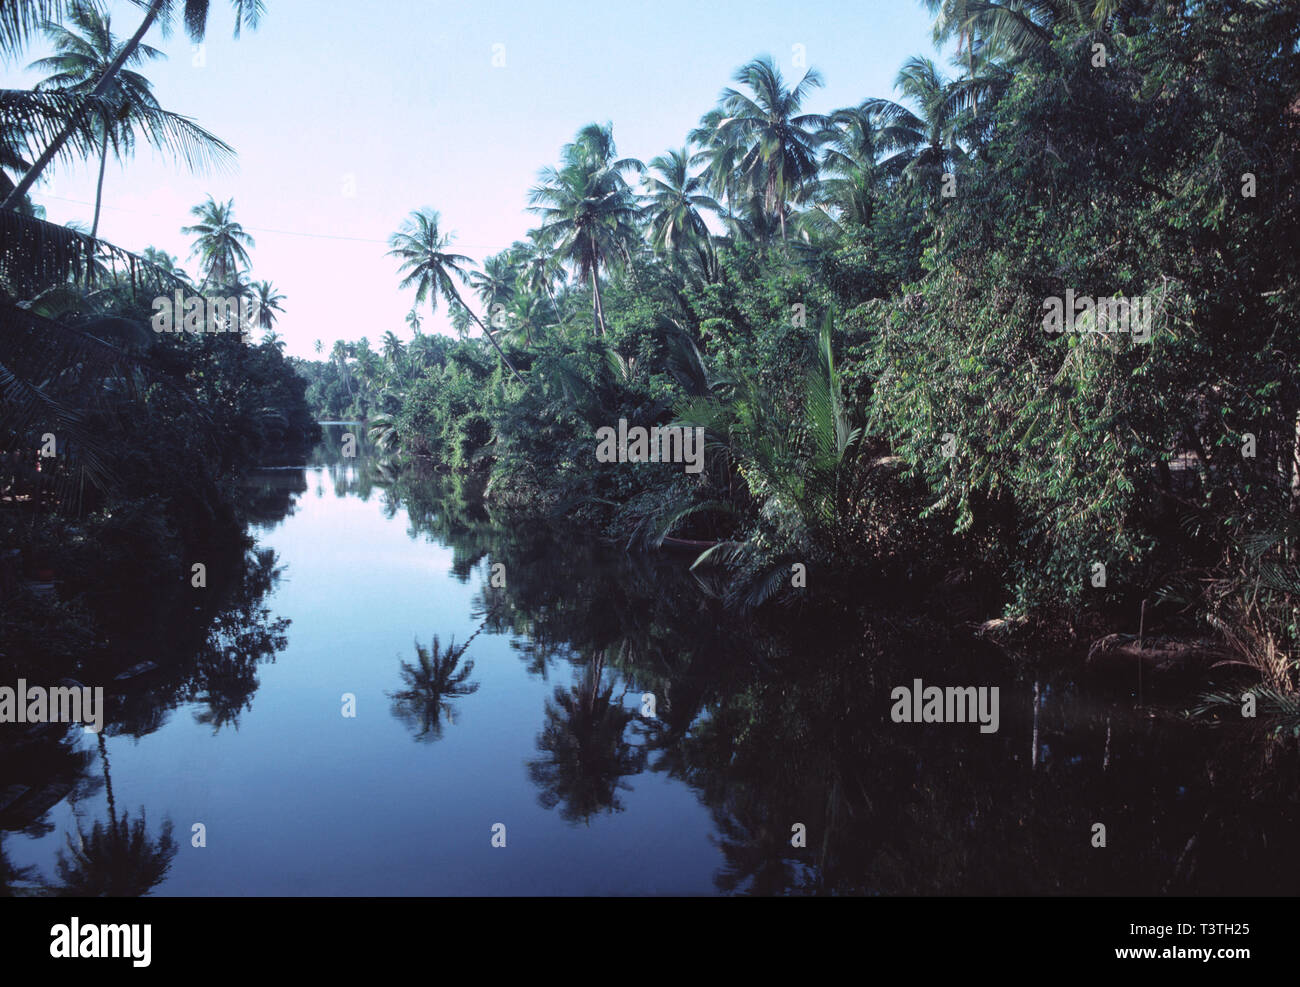 East Malaysia. Sabah. Rainforest with river and palms. Stock Photo